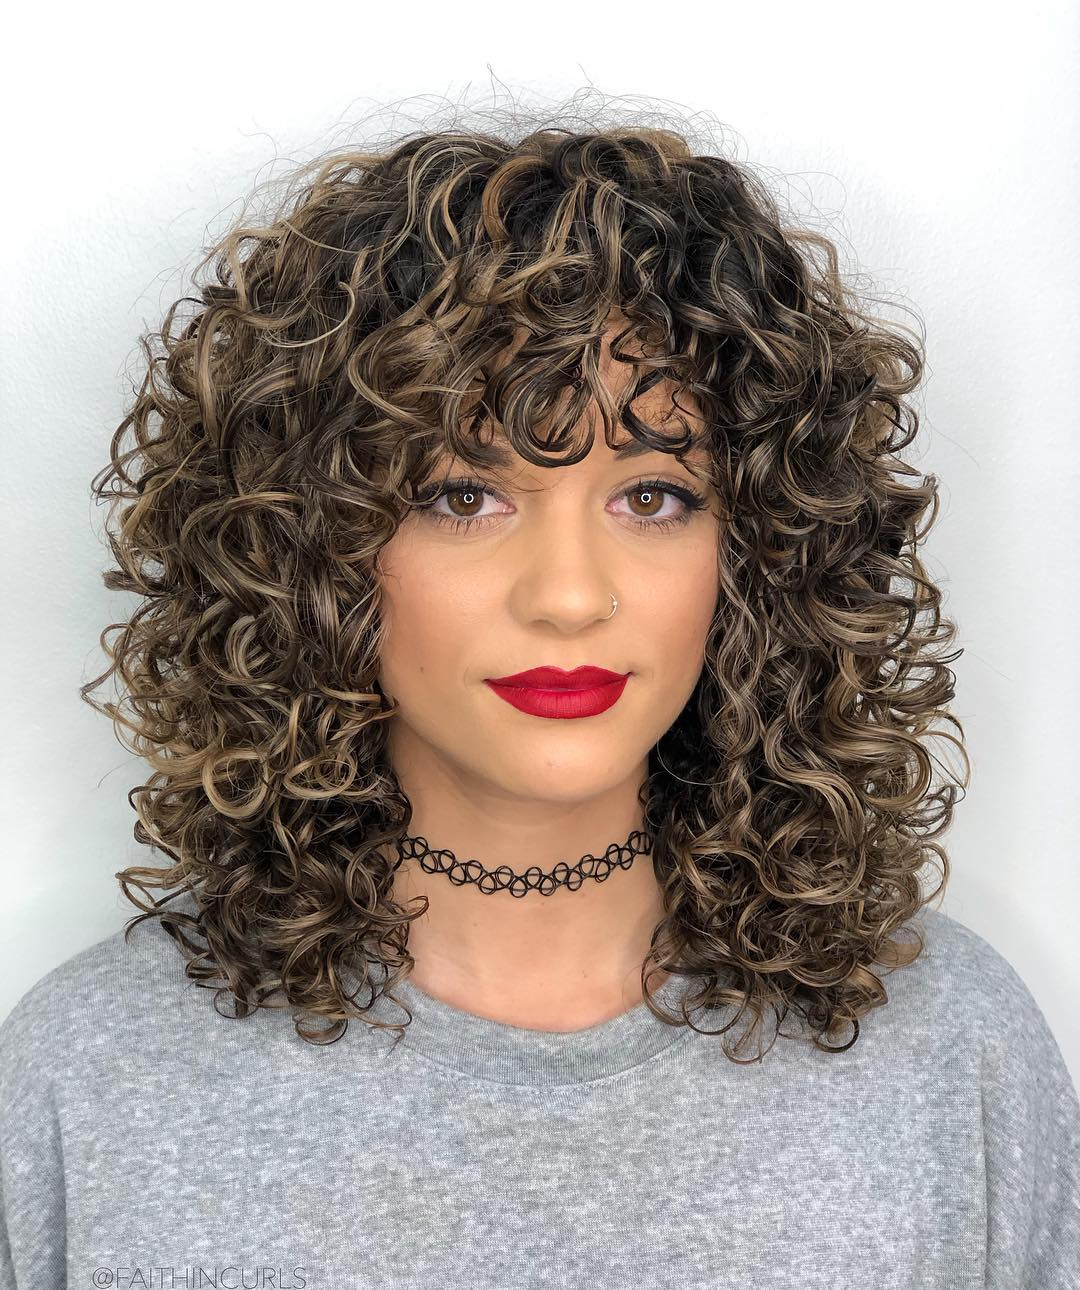 9 Best Ways to Have Curly Hair with Bangs in 209